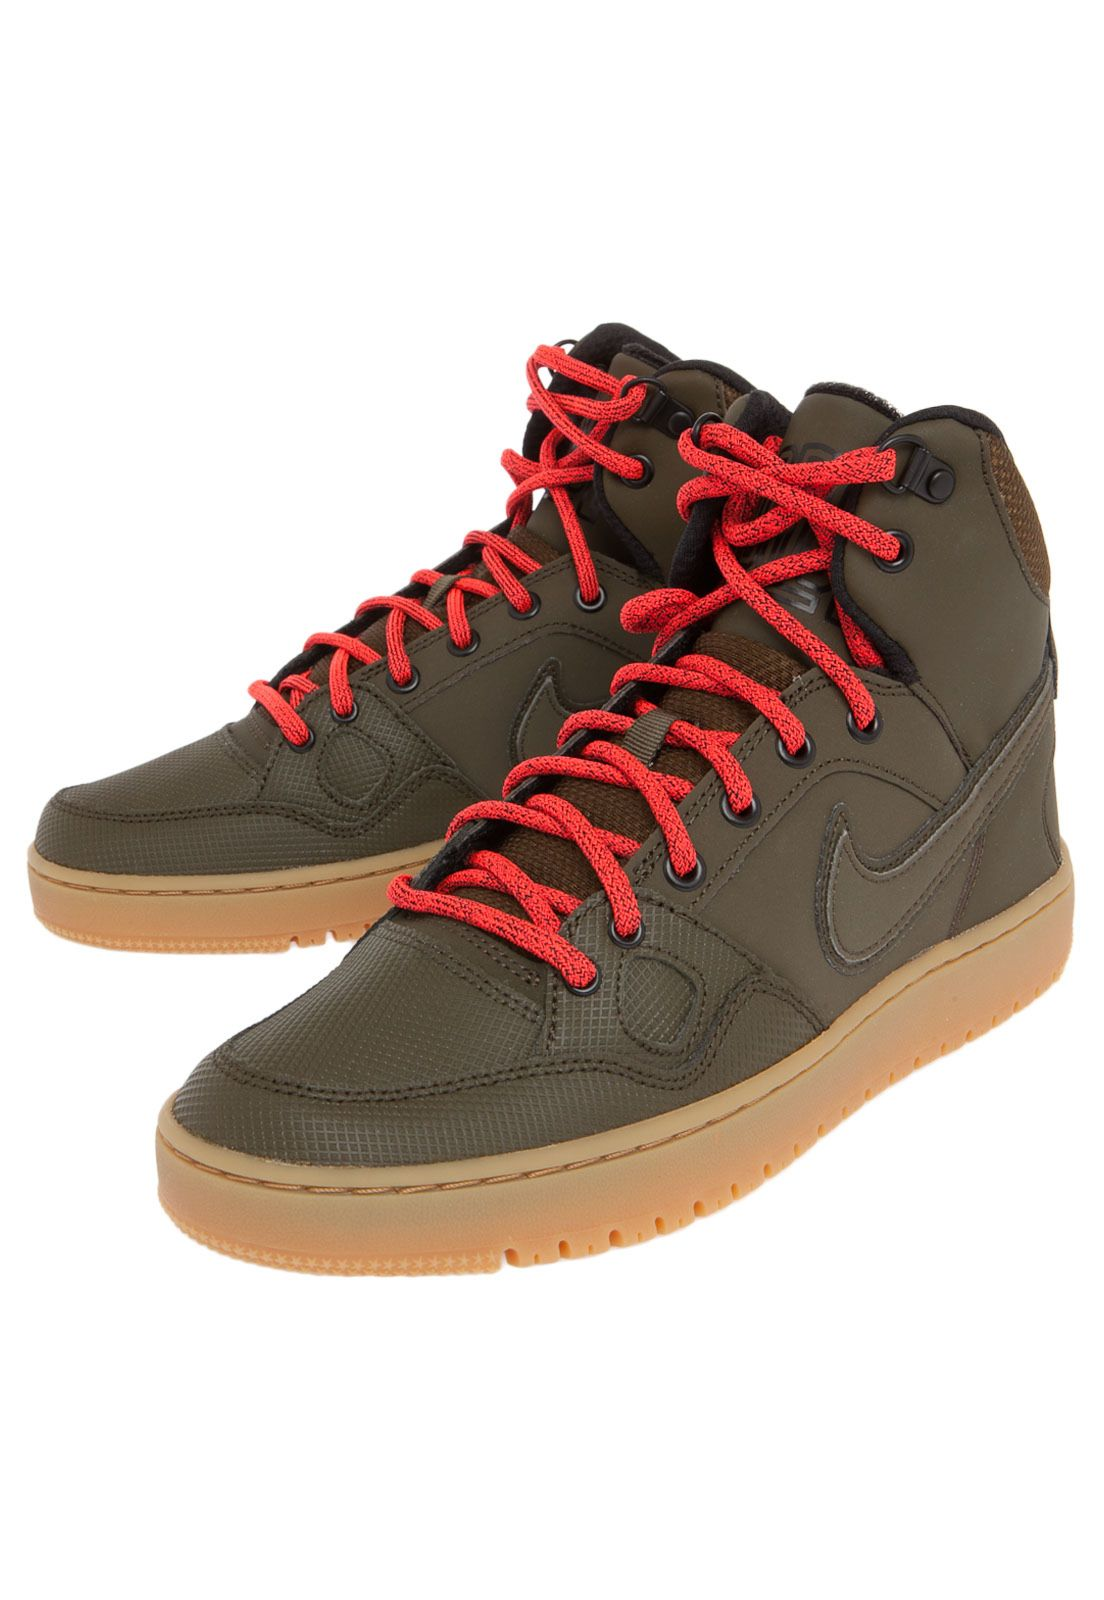 63f44f57602c Tênis Nike Son Of Force Mid Winter Verde - Marca Nike